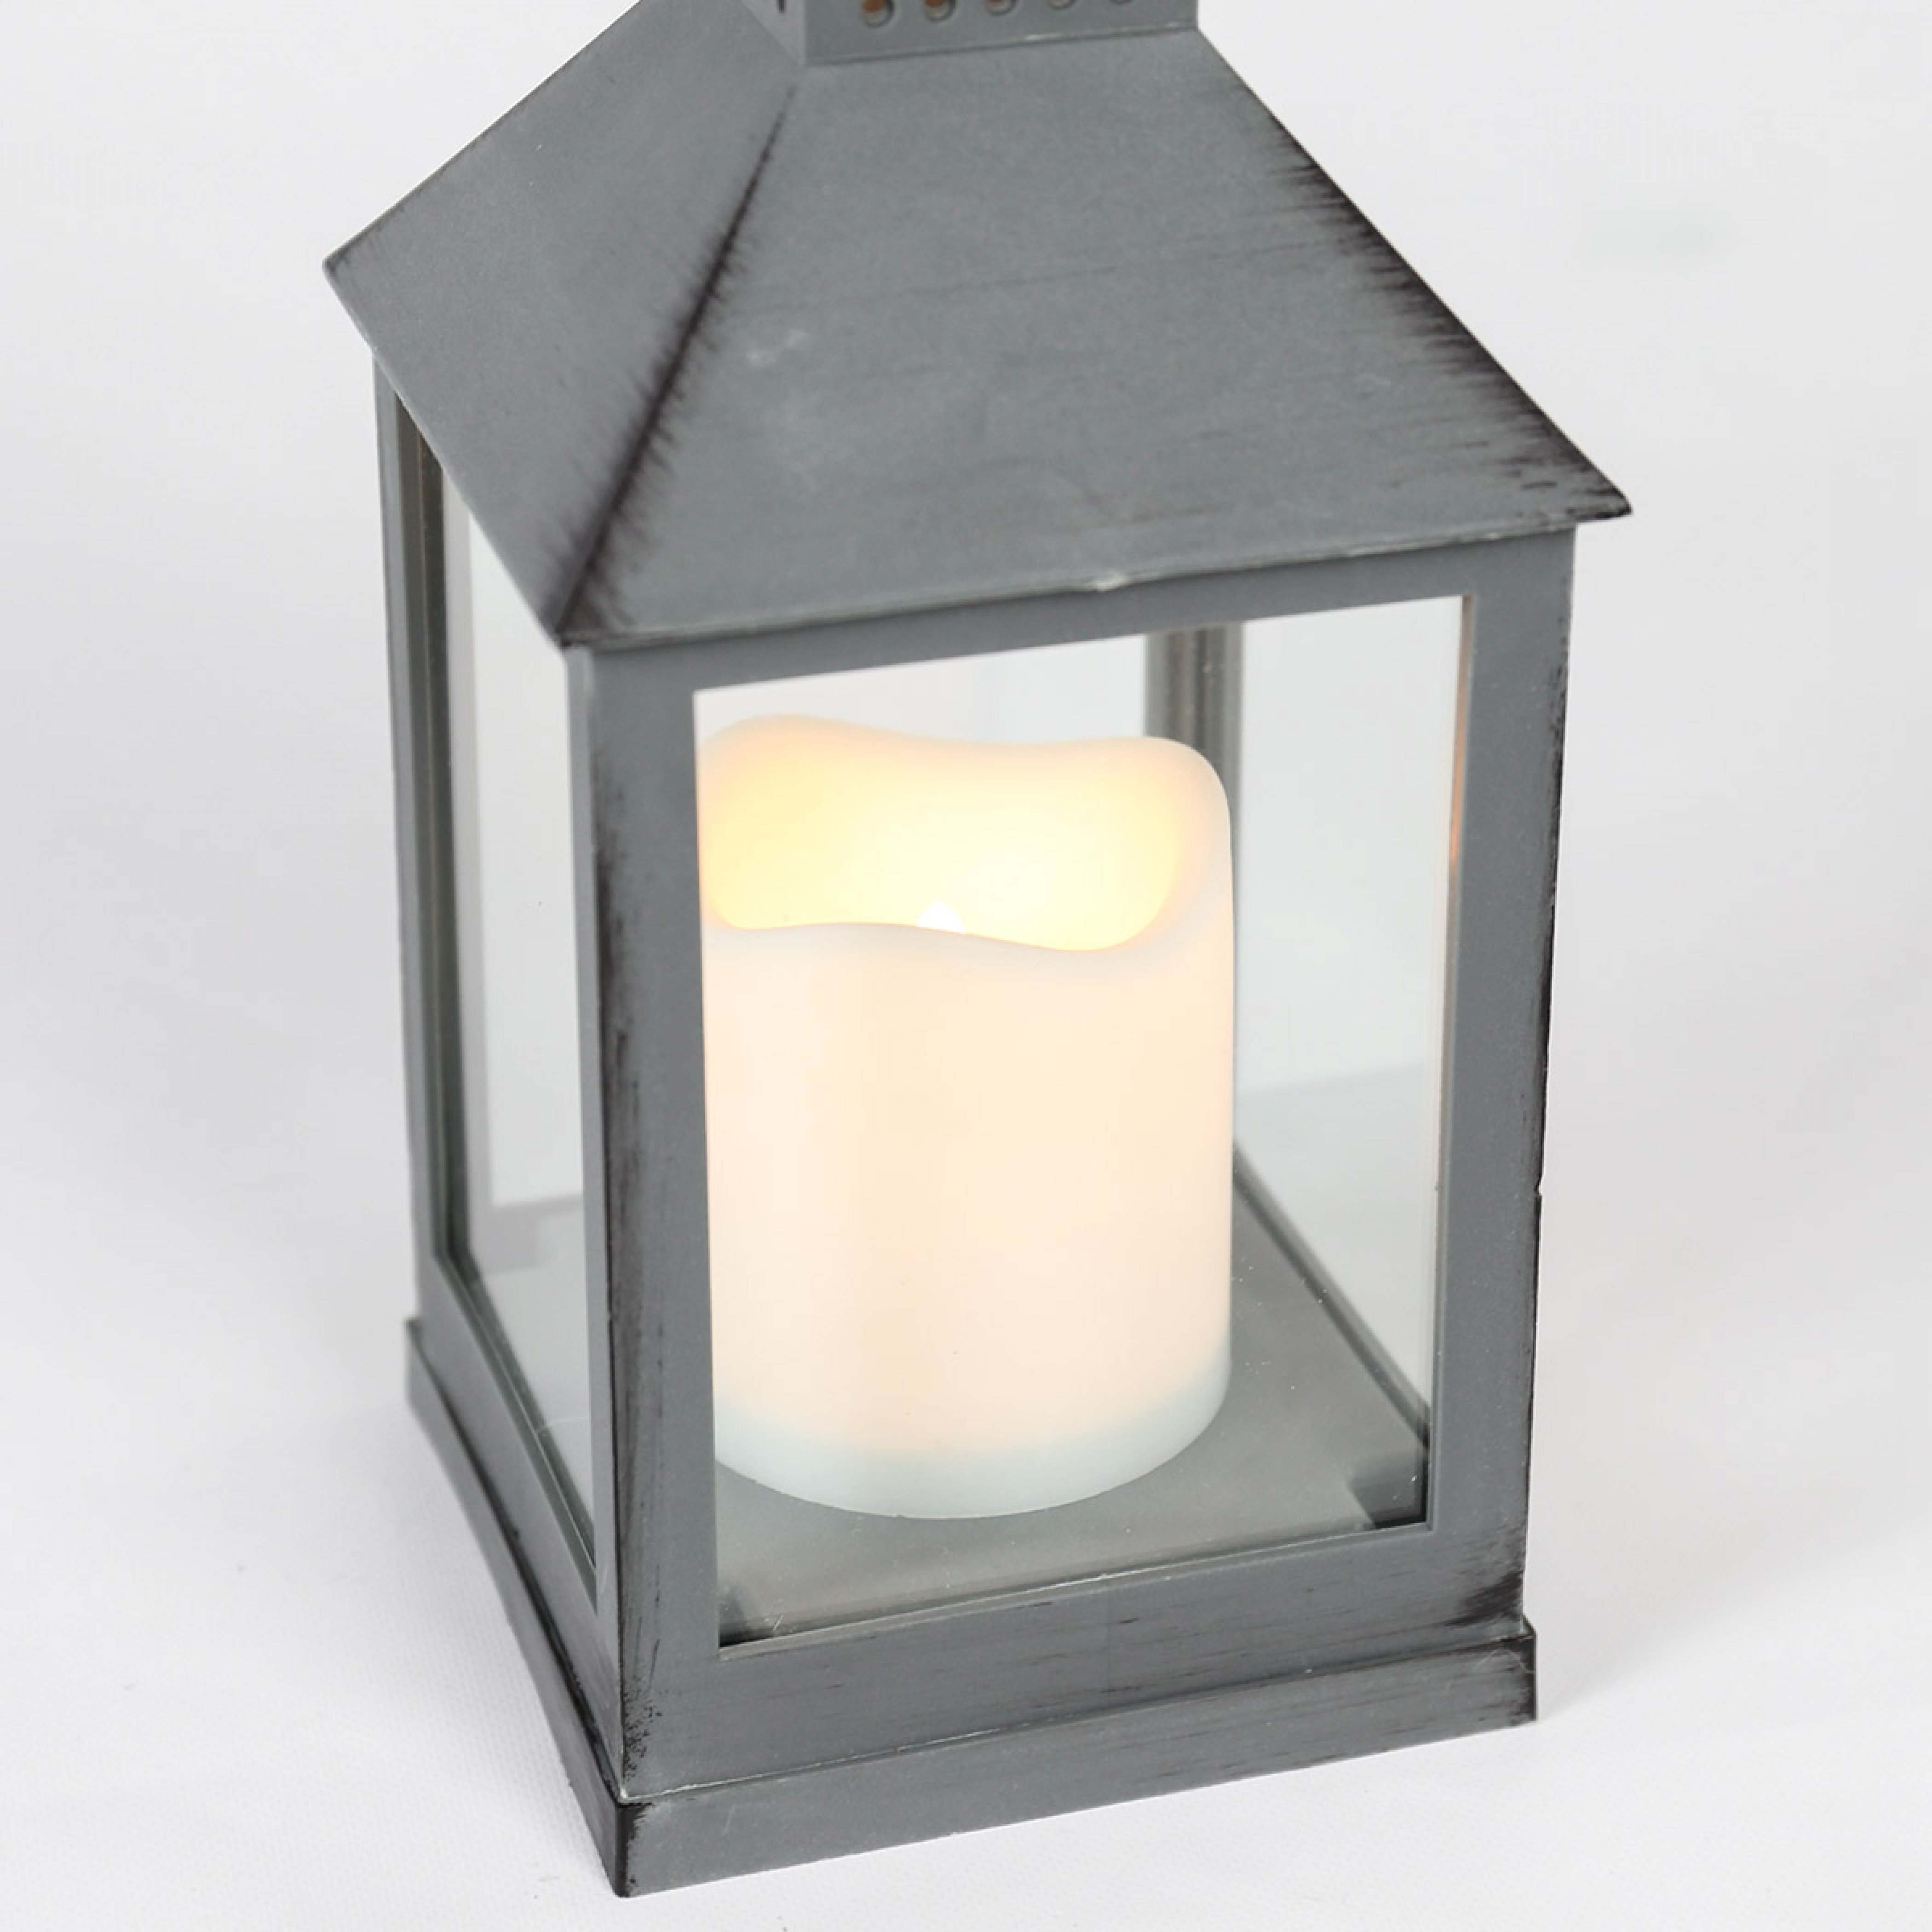 2019 Outdoor Grey Lanterns For Outdoor Battery Flickering Candle Lantern, 24Cm (Gallery 17 of 20)